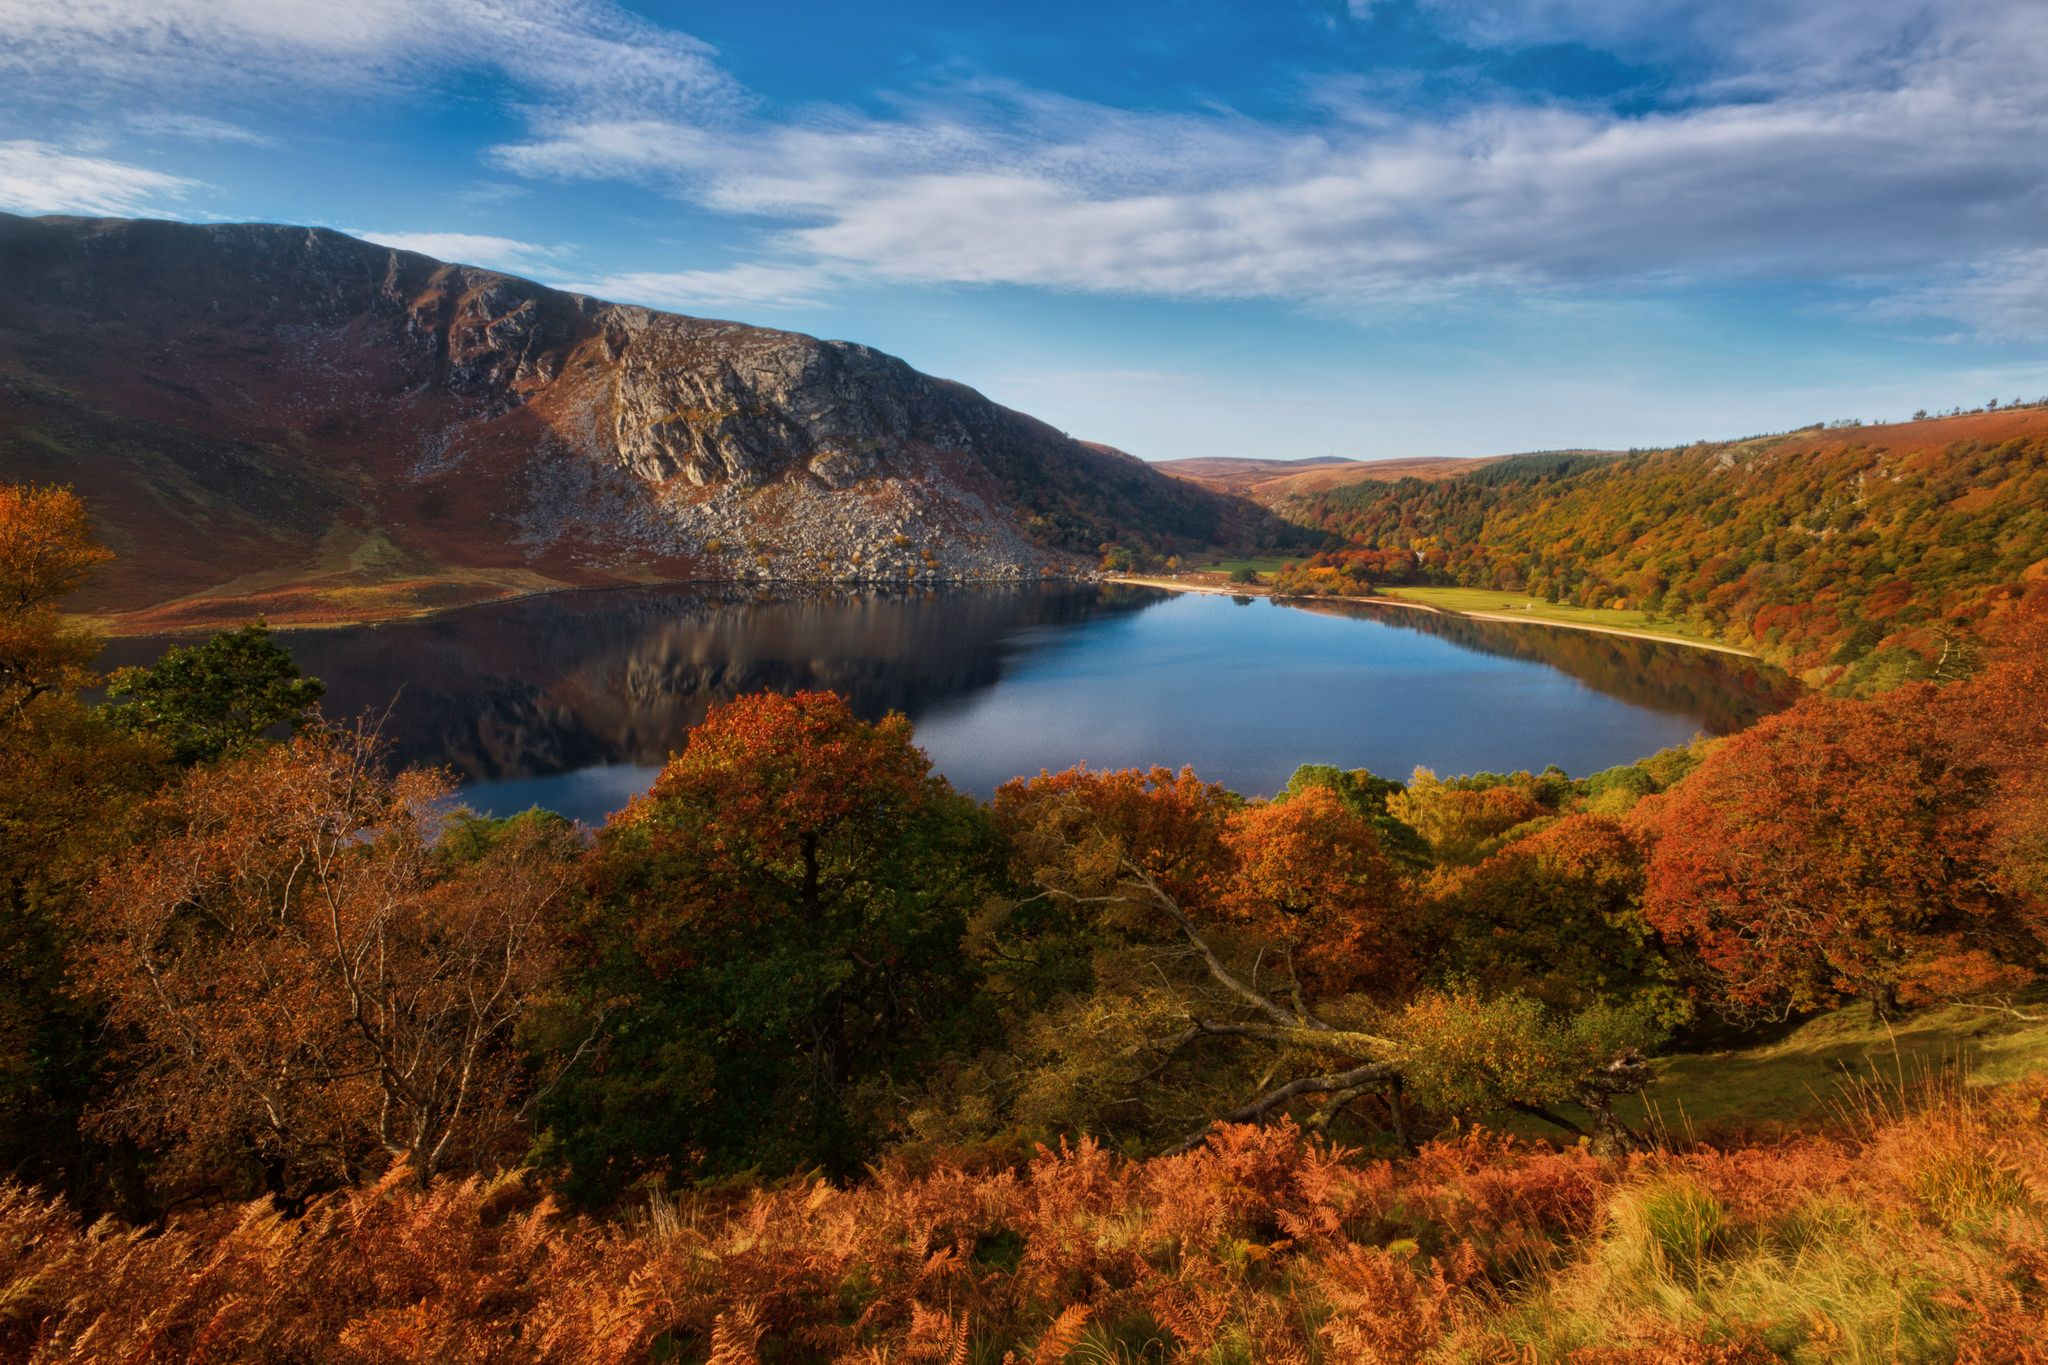 https://flic.kr/p/NUiqb7 | Lough Tay | My first trip to Lough Tay in the Wicklow Mountains. A gorgeous spot especially at this time of year!